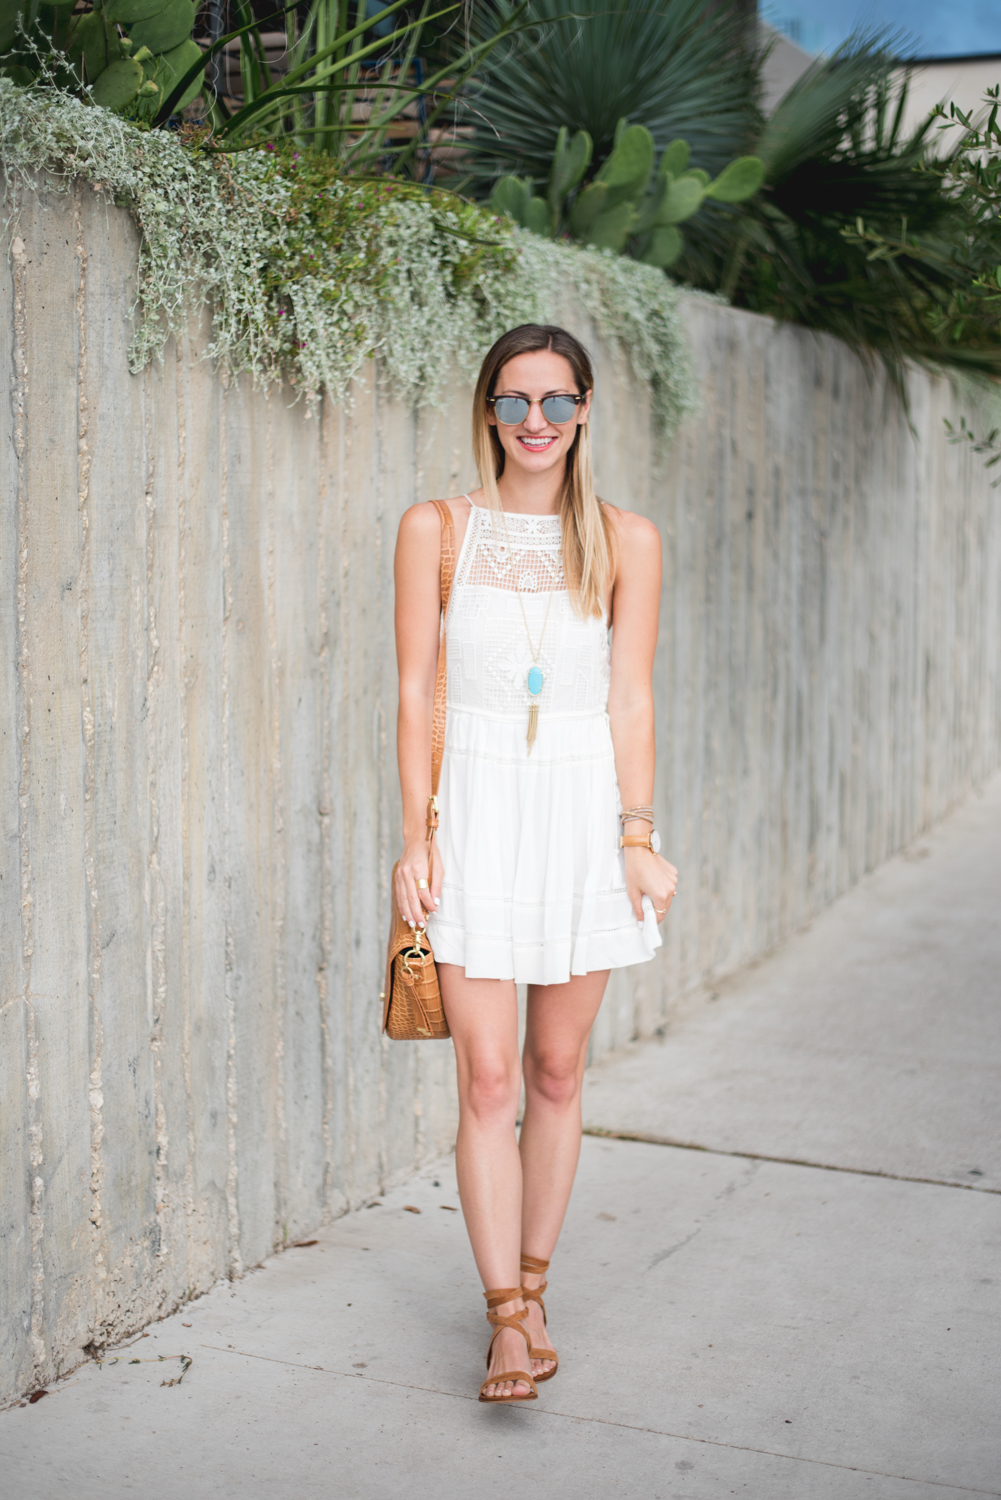 livvyland-blog-olivia-watson-austin-texas-fashion-blogger-free-people-flowy-white-high-neck-crochet-dress-tassel-south-lamar-kathryn-frazer-photography-boho-festival-outfit-1